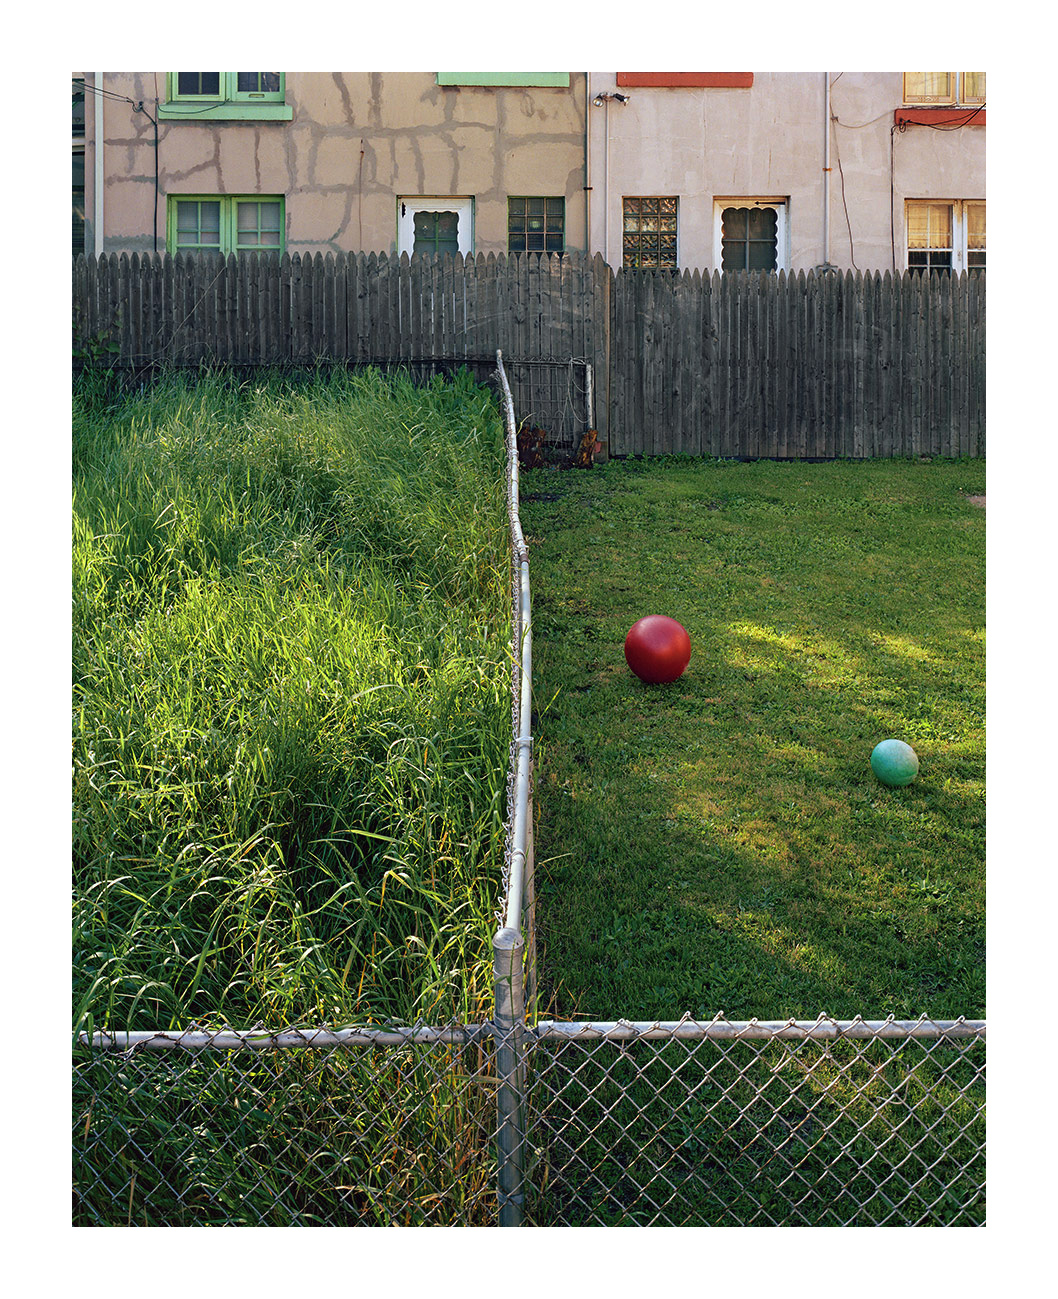 Two Yards, Marktown, East Chicago, IN 2003